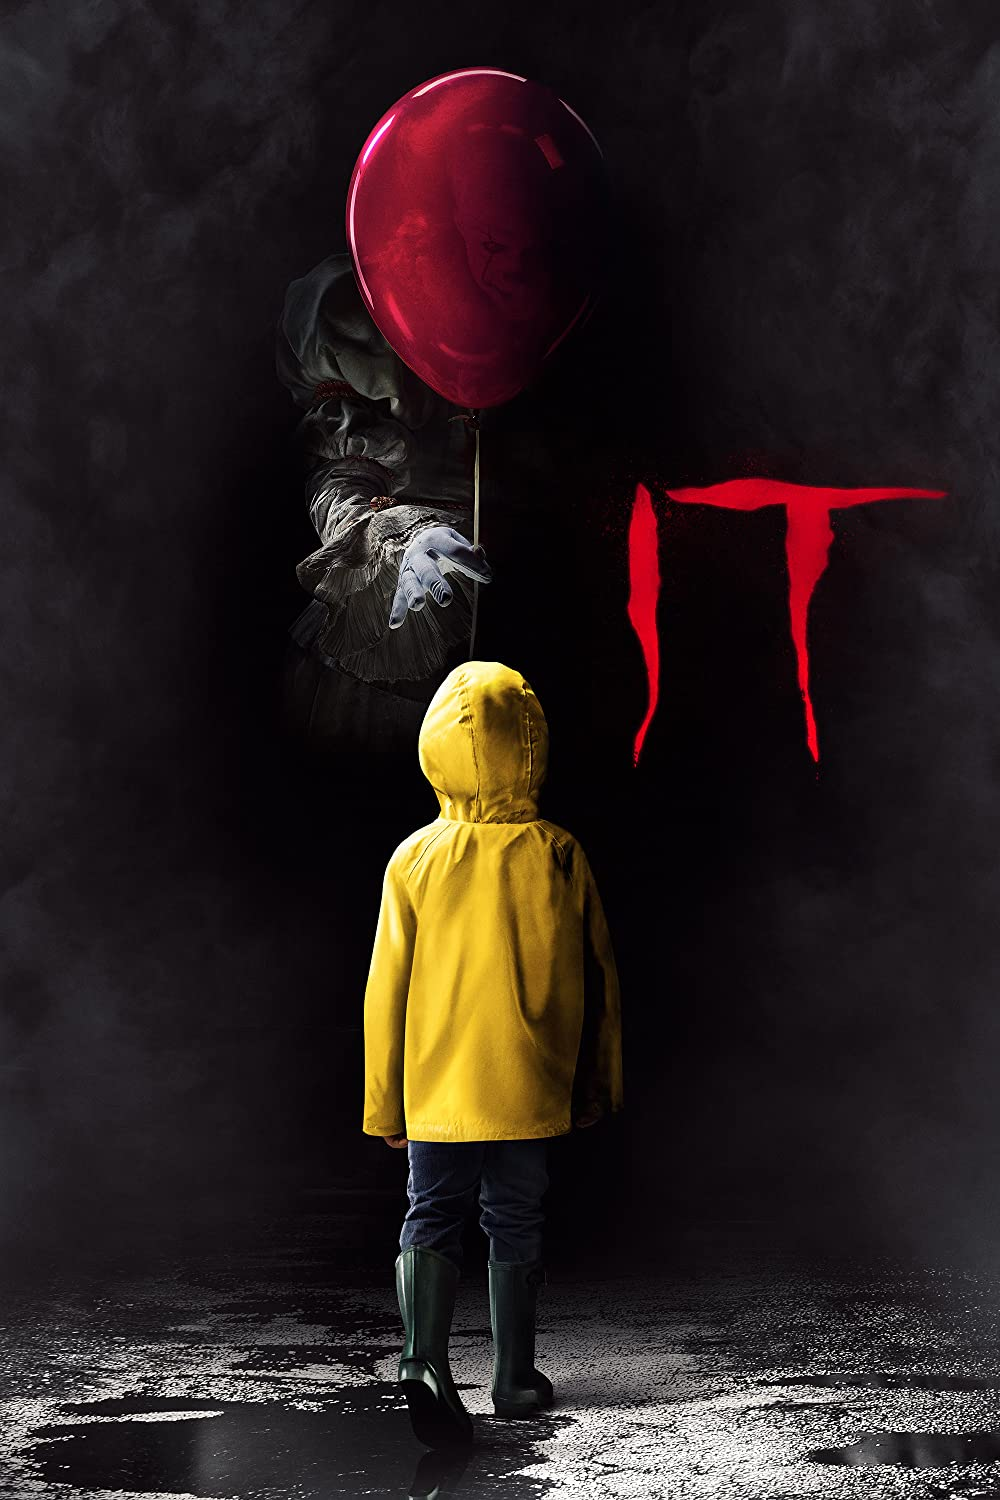 Es: Directed by Andy Muschietti. With Jaeden Martell, Jeremy Ray Taylor, Sophia Lillis, Finn Wolfhard. In the summer of 1989, a group of bullied kids band together to destroy a shape-shifting monster, which disguises itself as a clown and preys on...